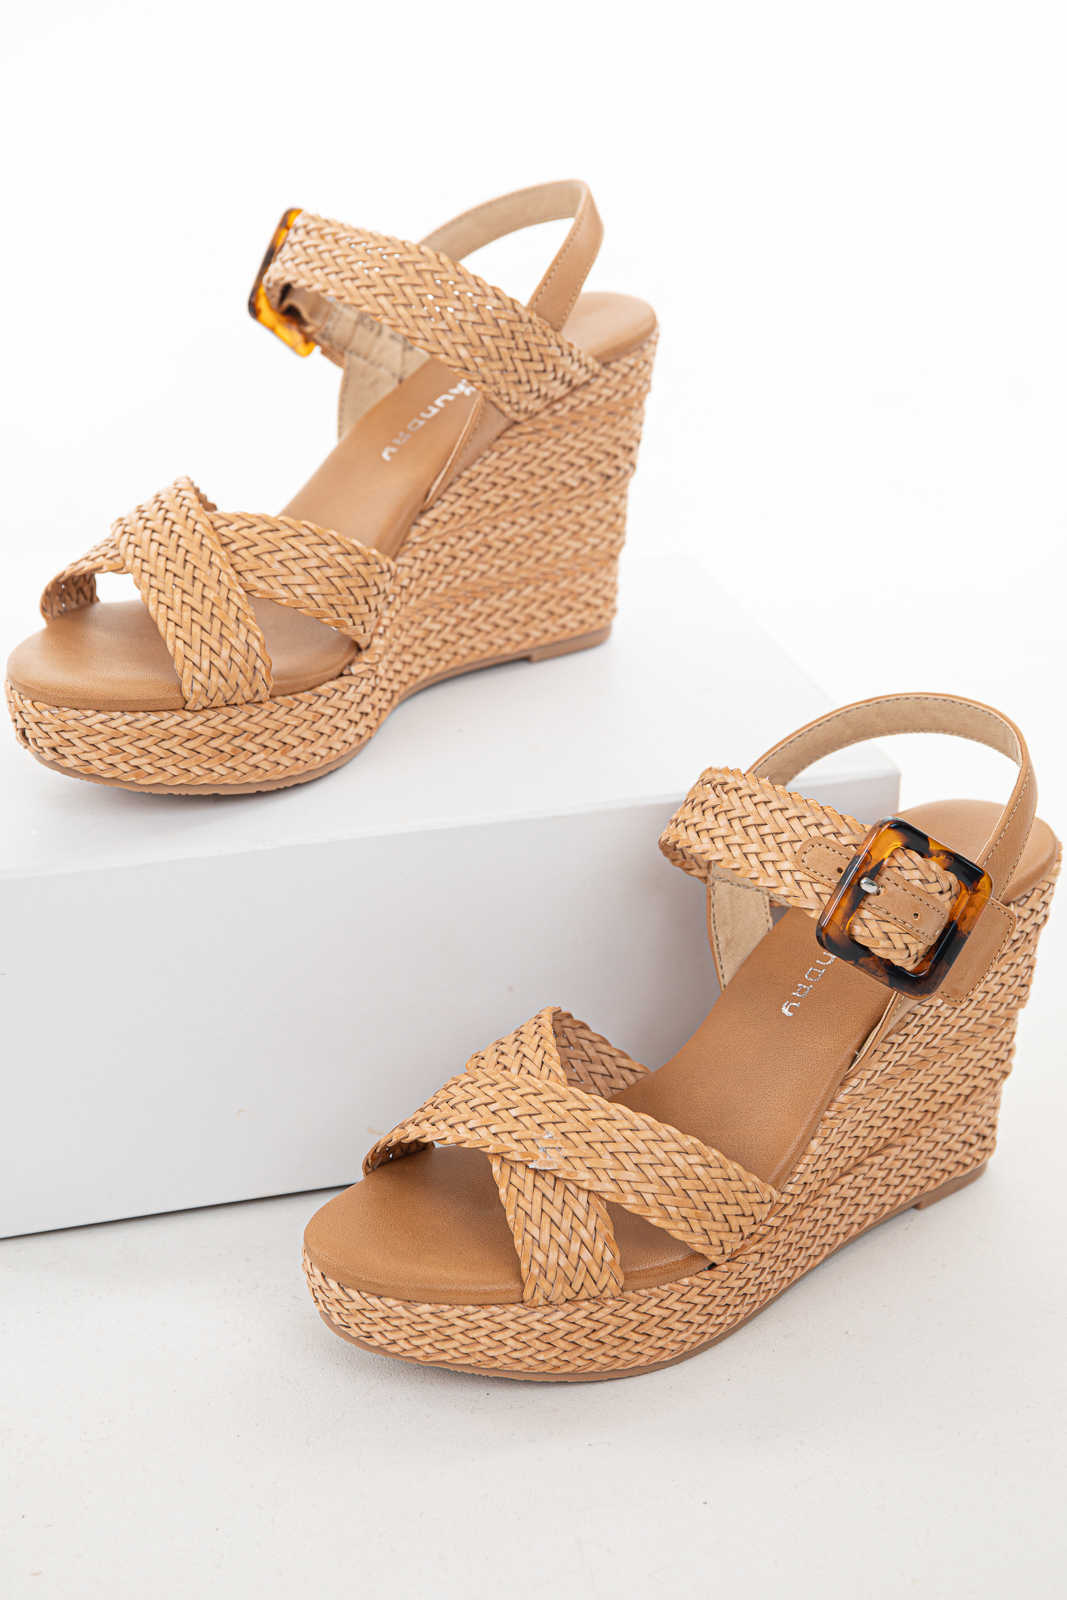 Camel Braided Espadrille Sling Back Wedges with Buckle